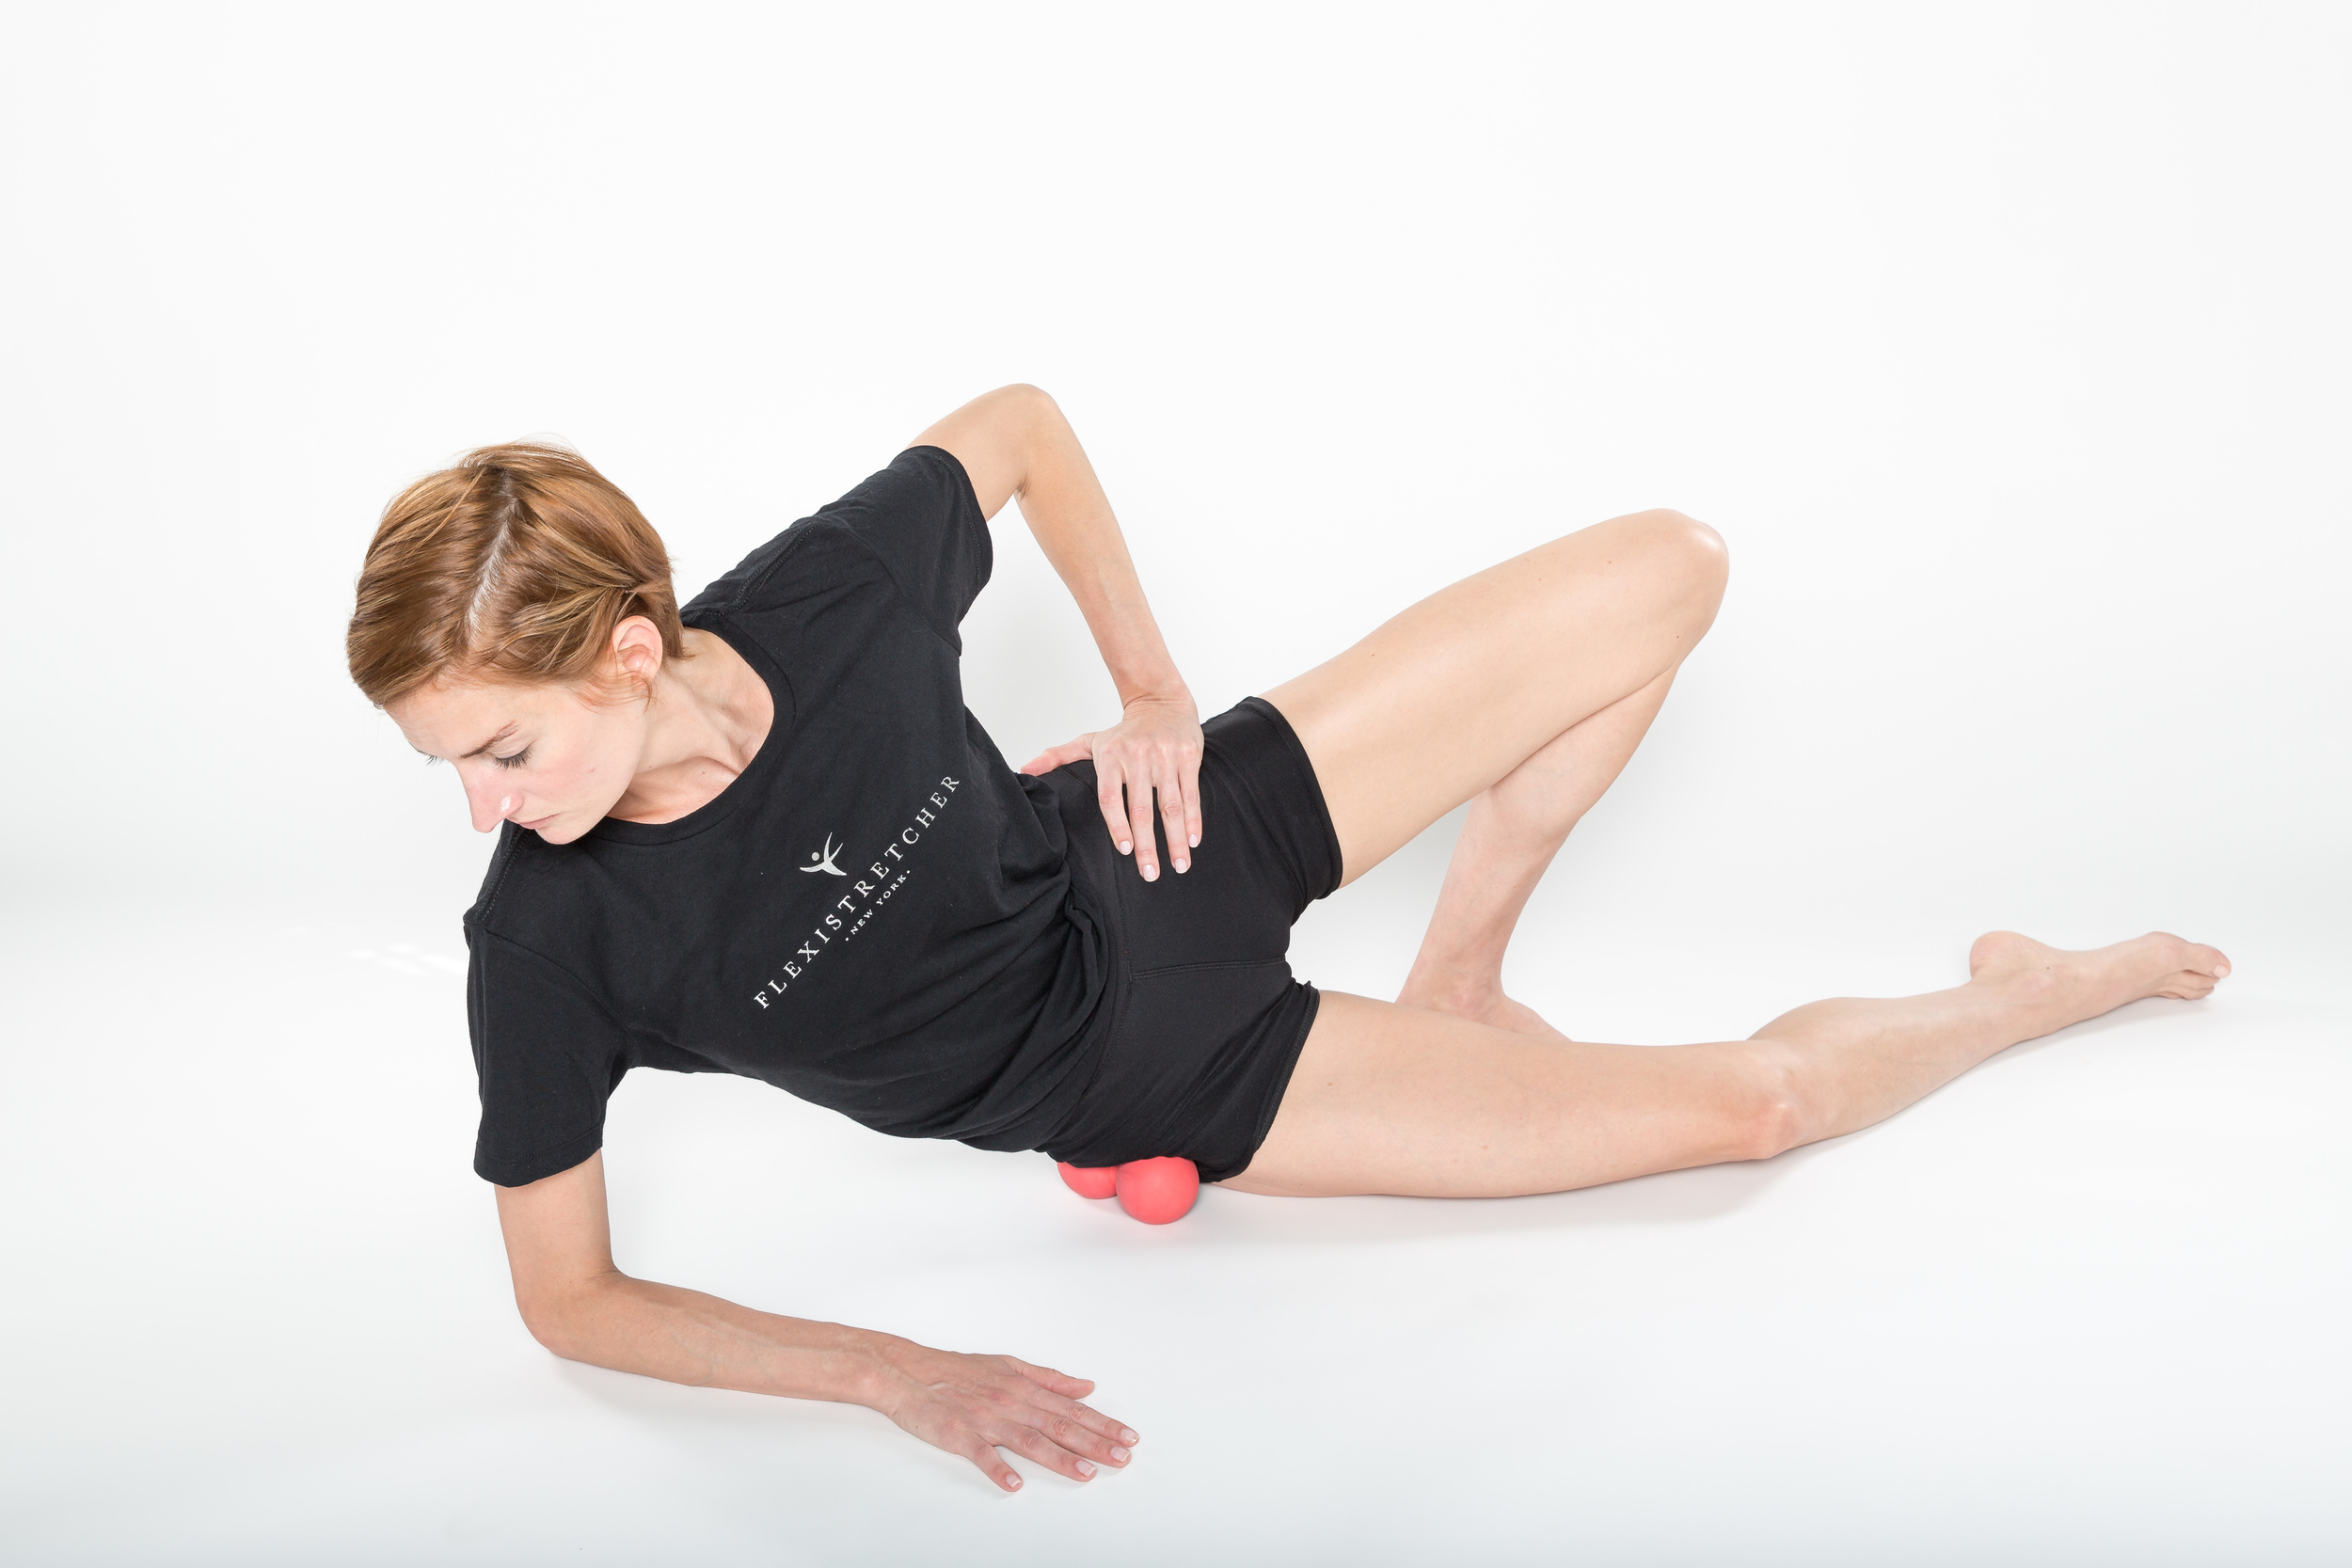 Flexistretcher_MassageBalls_05232016-74.jpg